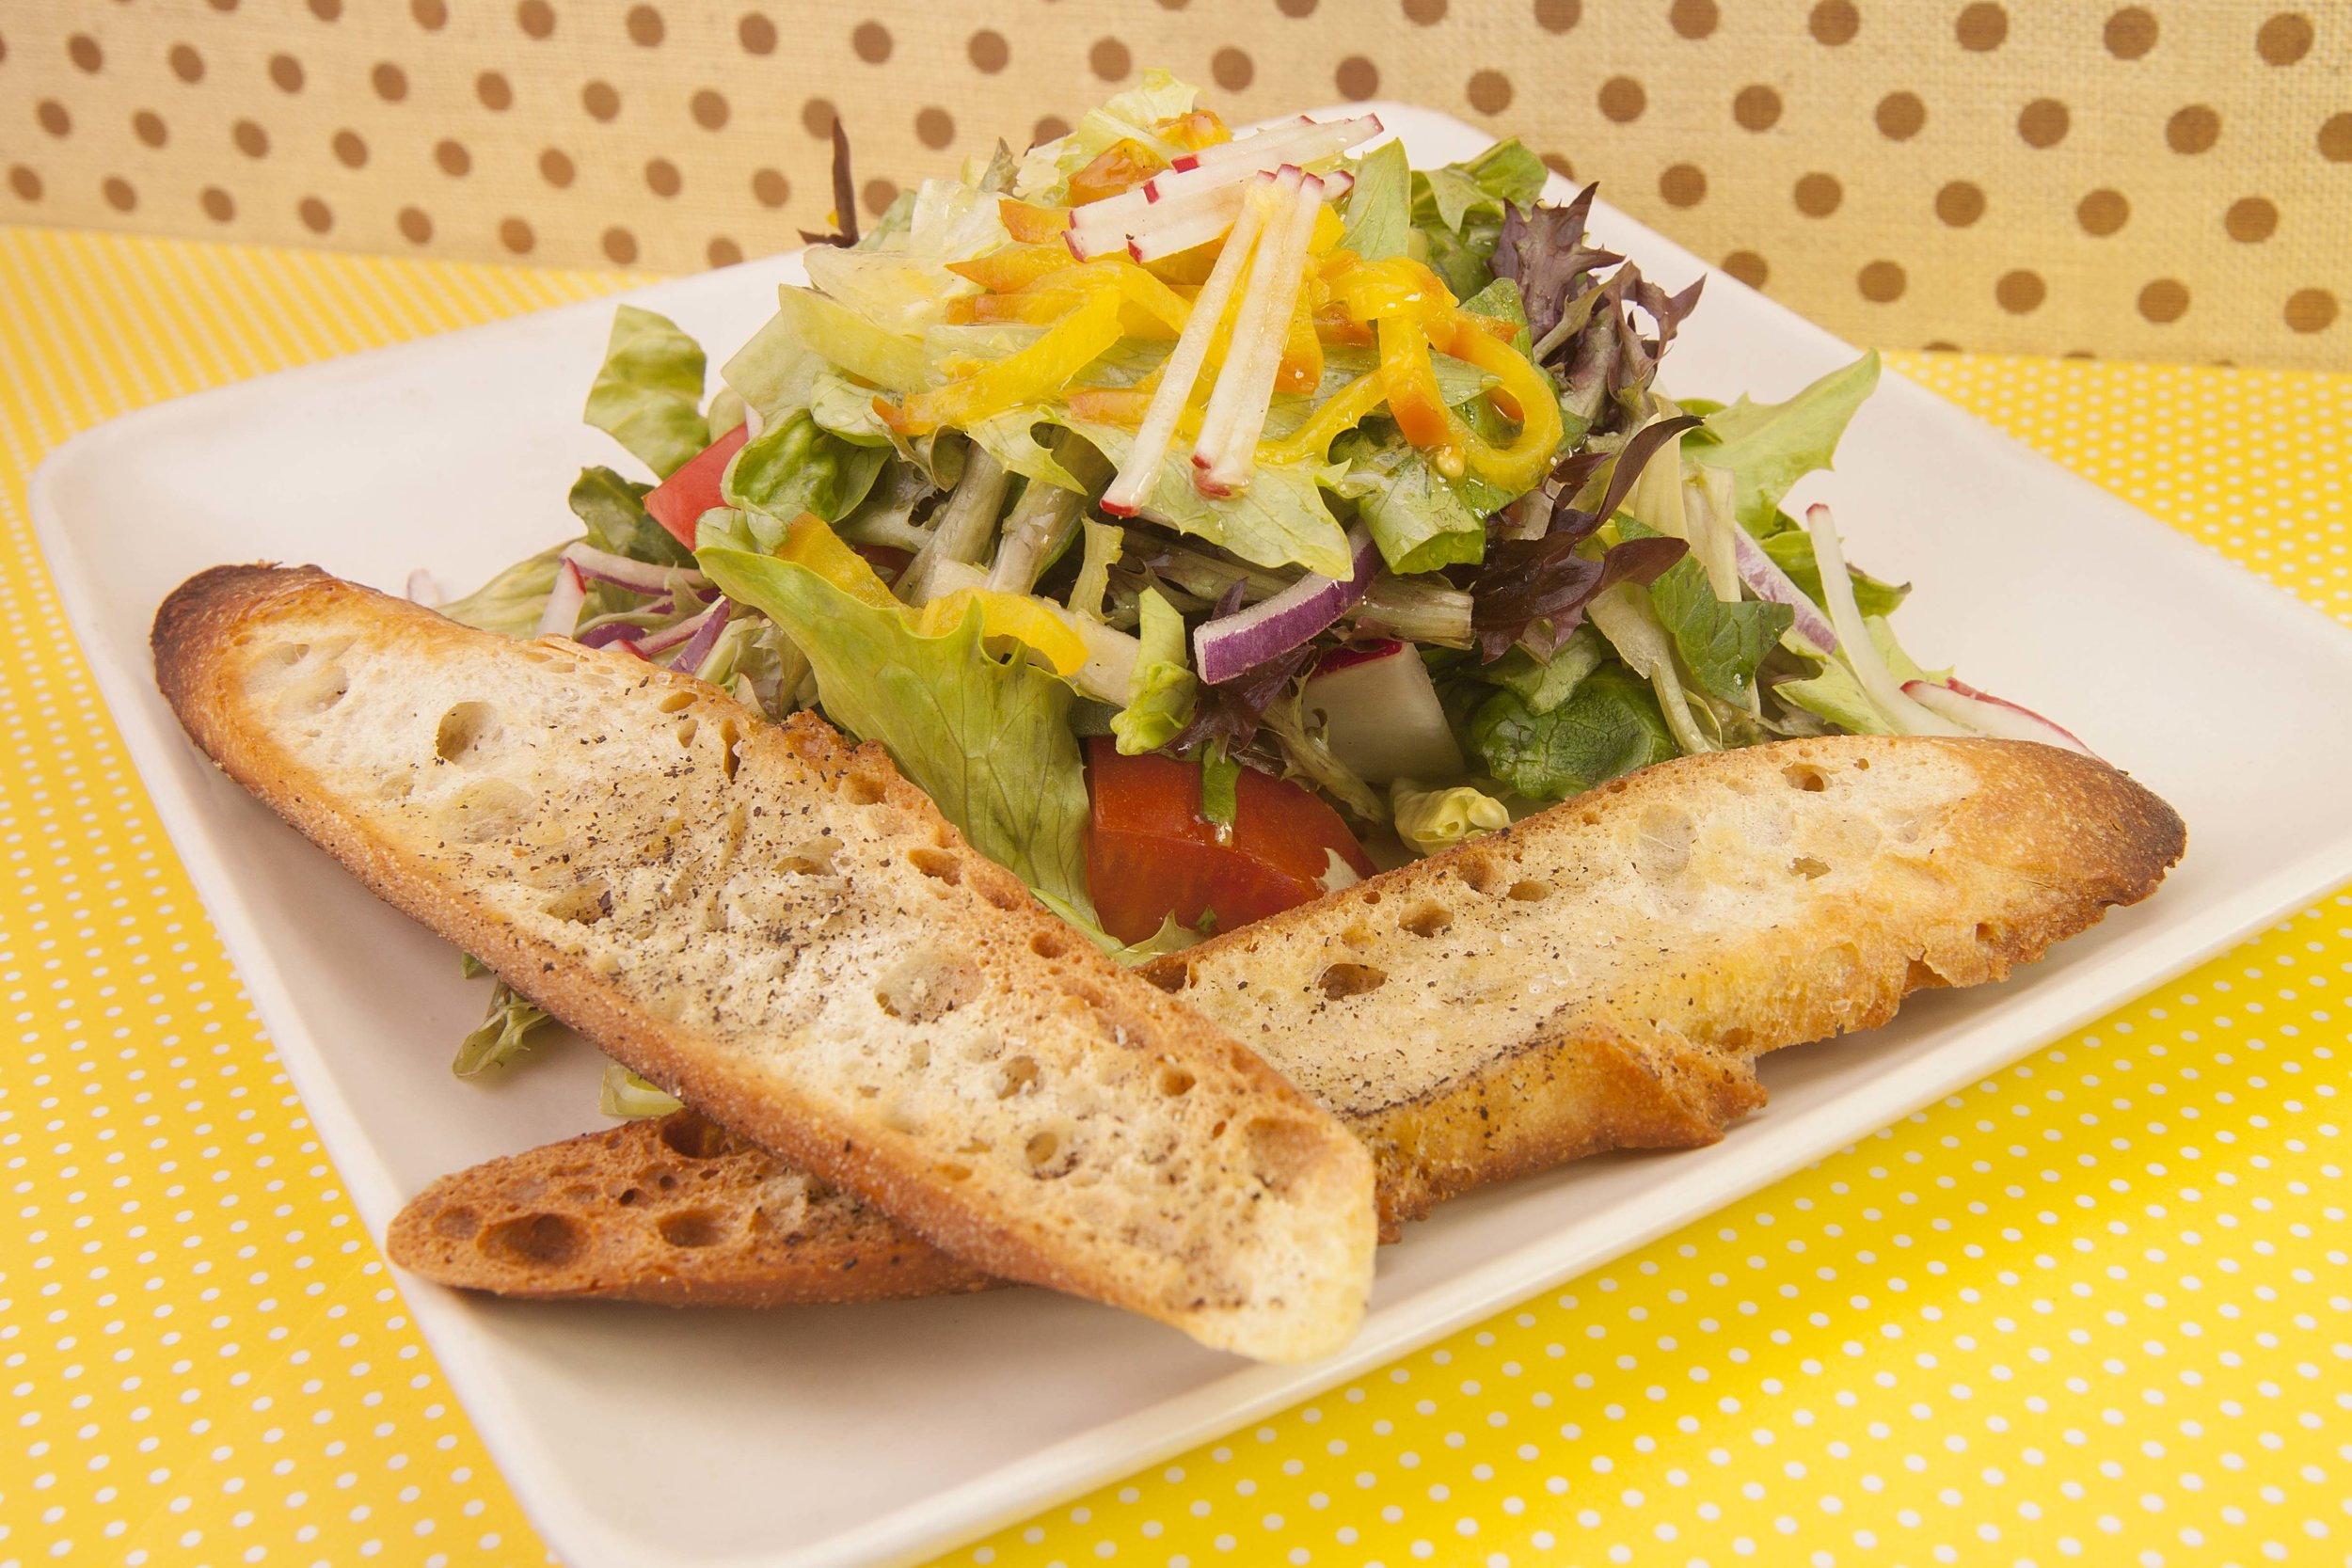 Shredded Salad with French Baguette Croutons2.jpg